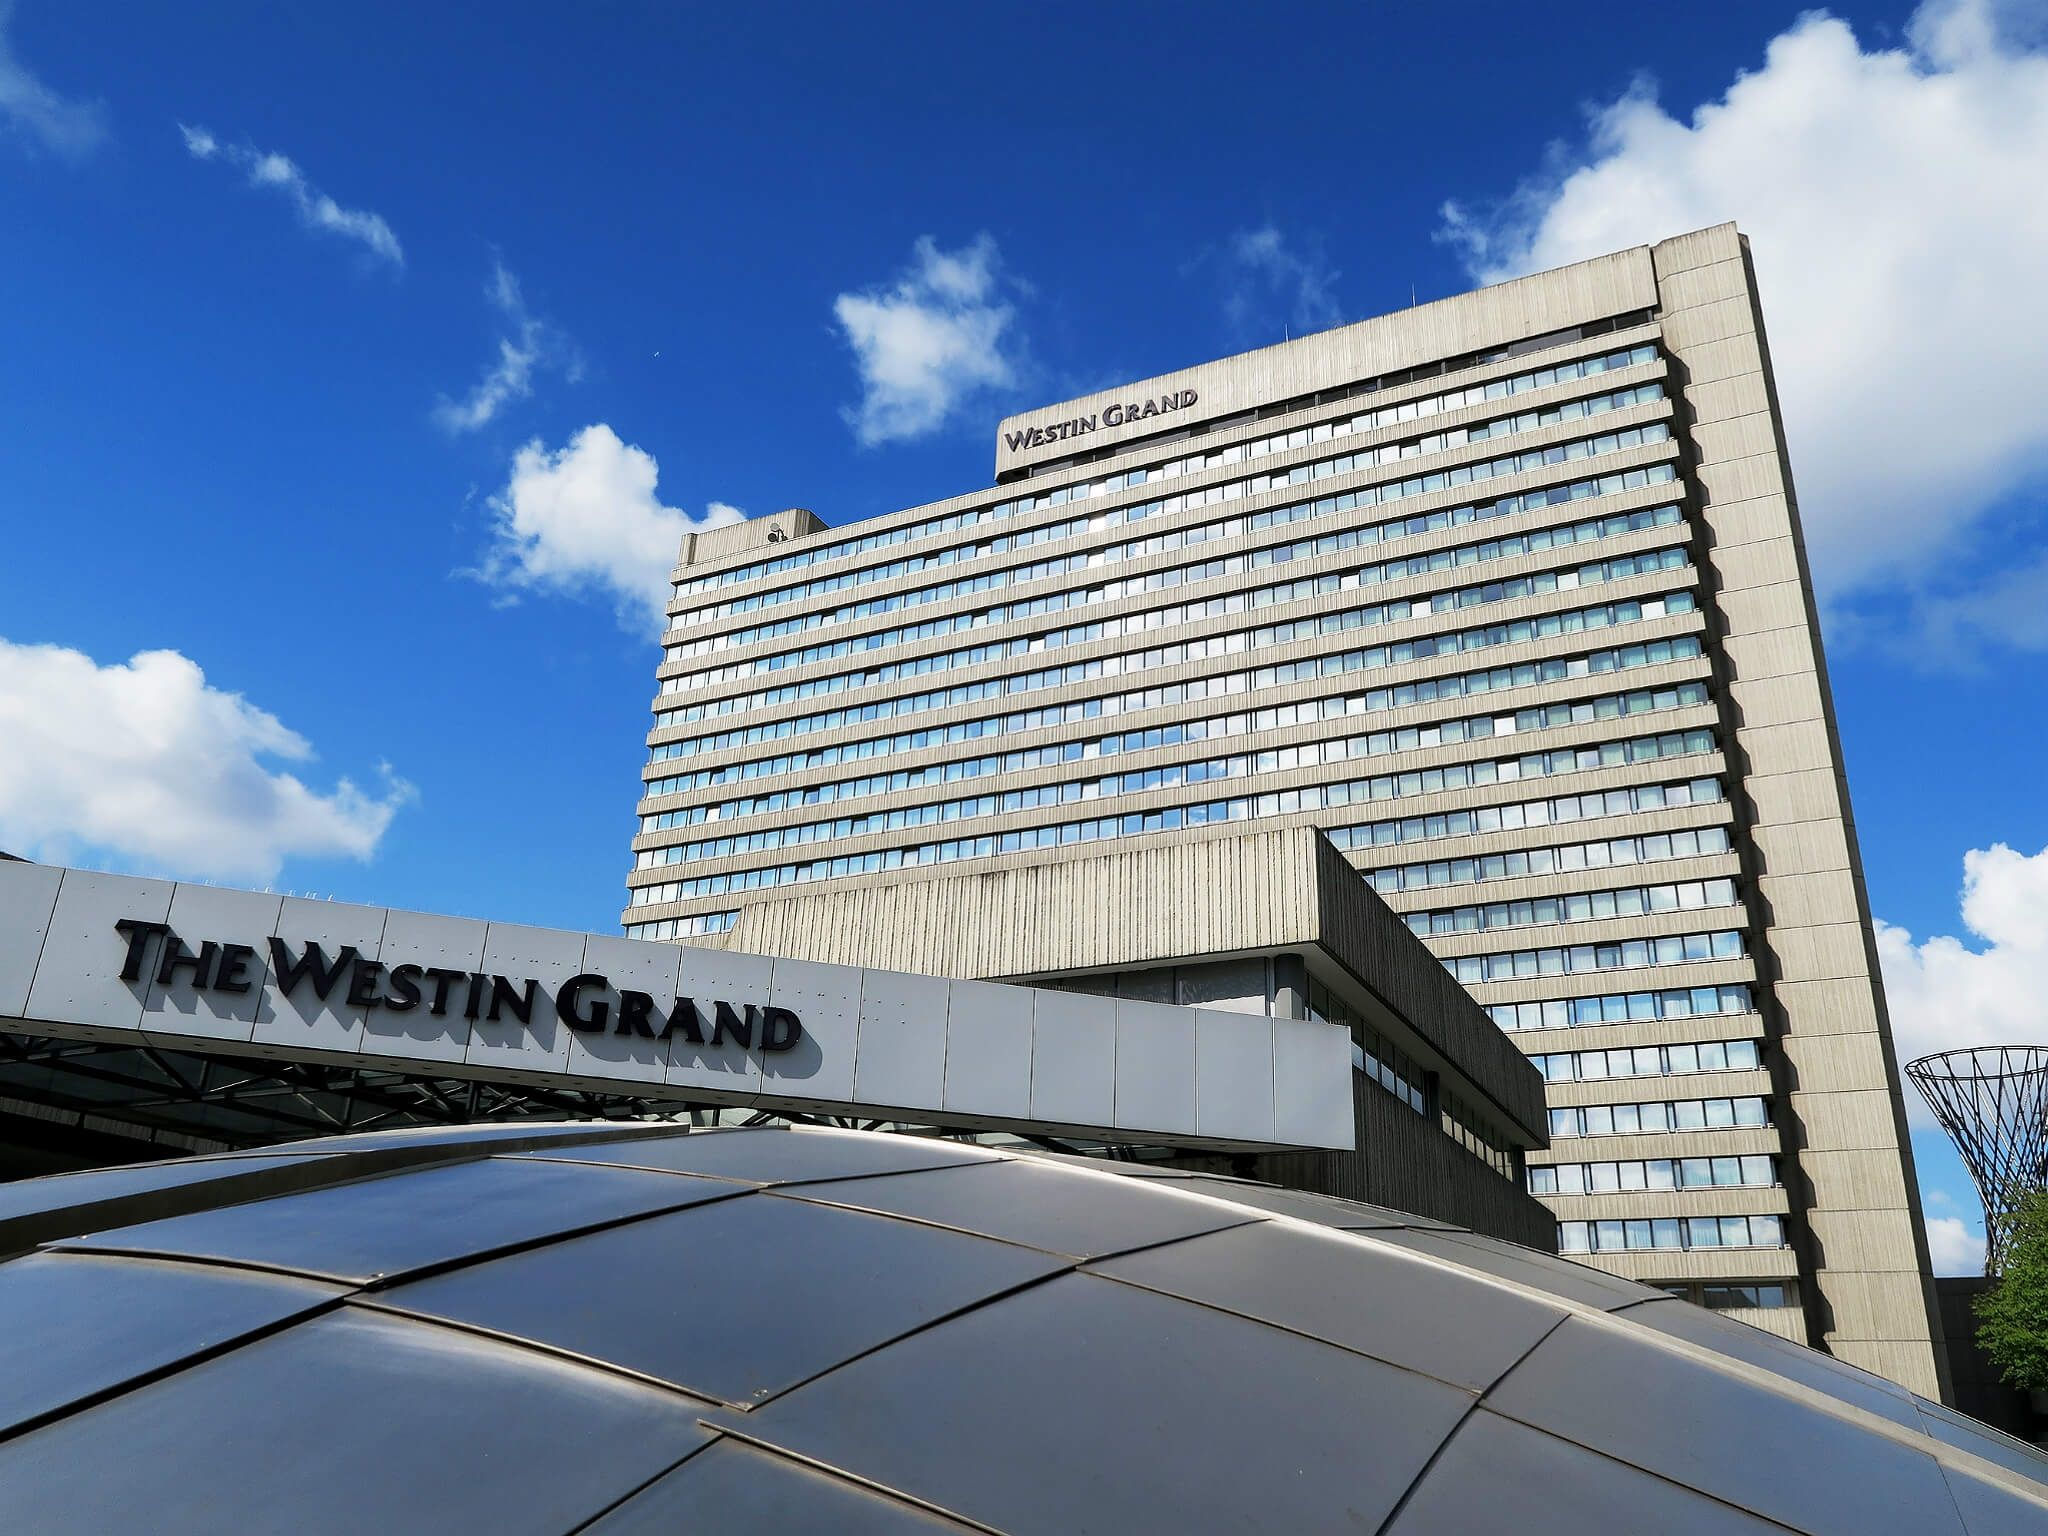 Entrance of The Westin Grand Hotel Bogenhausen in Munich